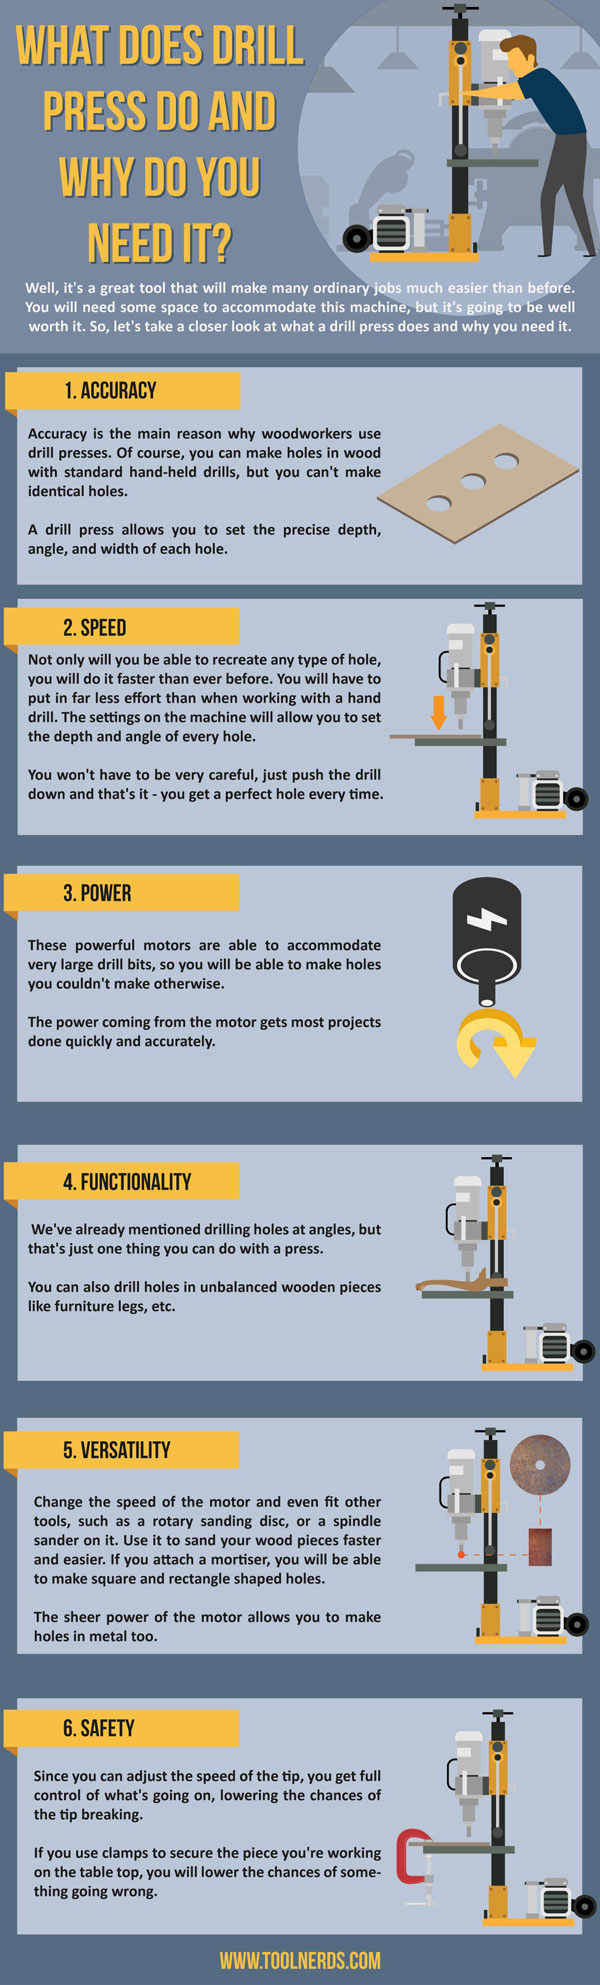 What Does Drill Press Do and Why Do You Need it Infographic